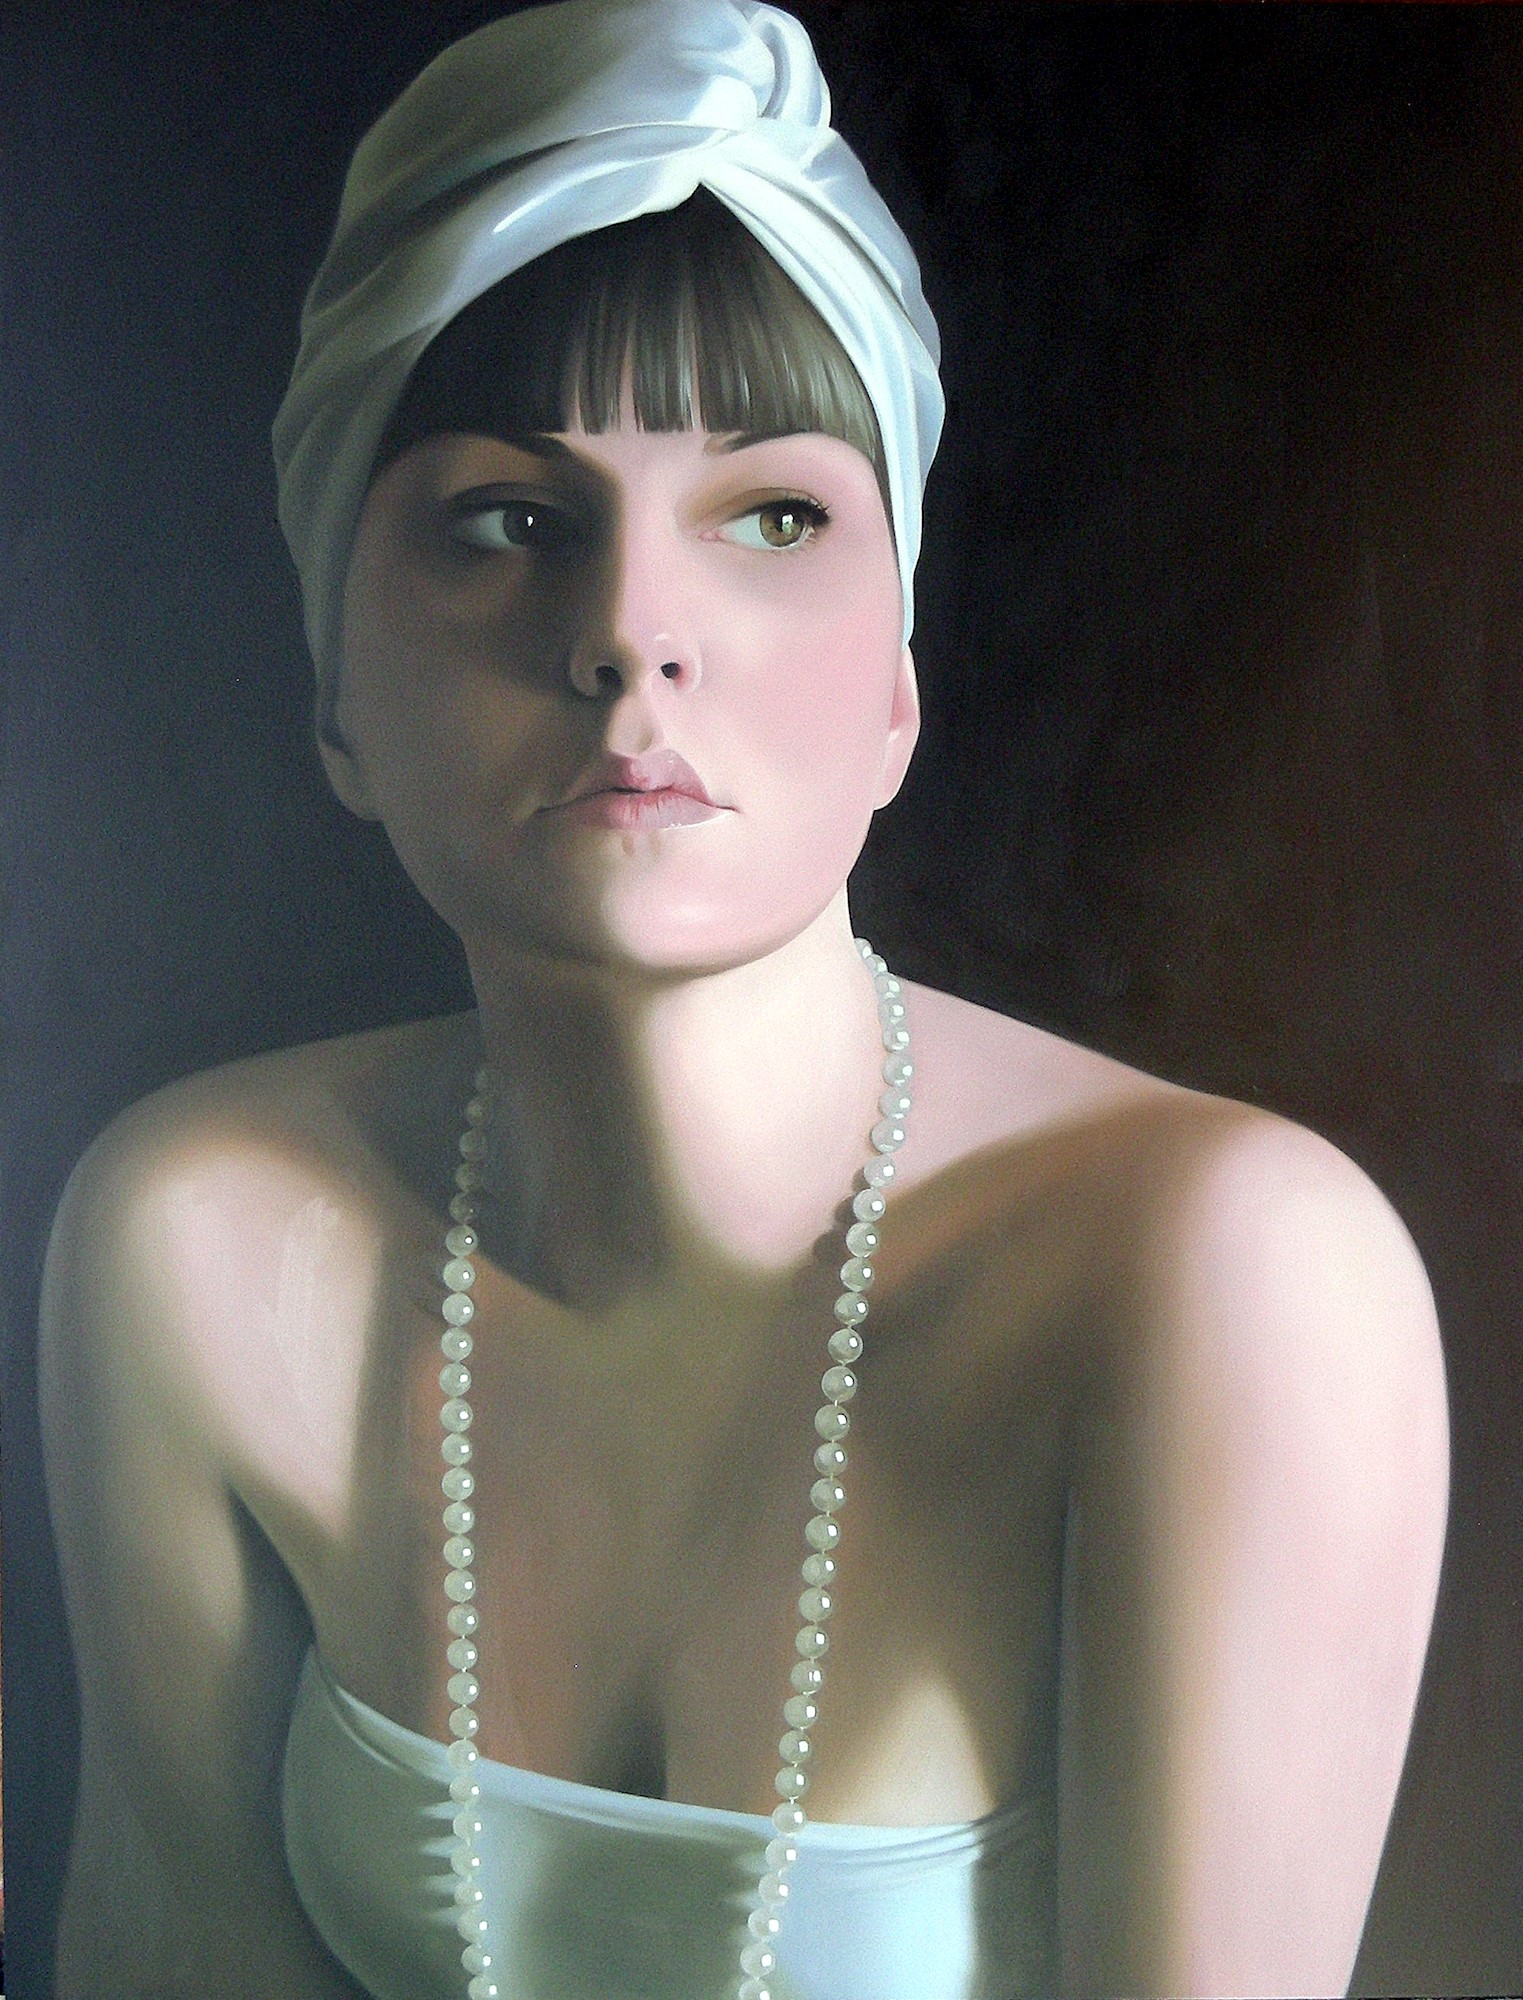 'White Turban' by artist Patricia Rorie